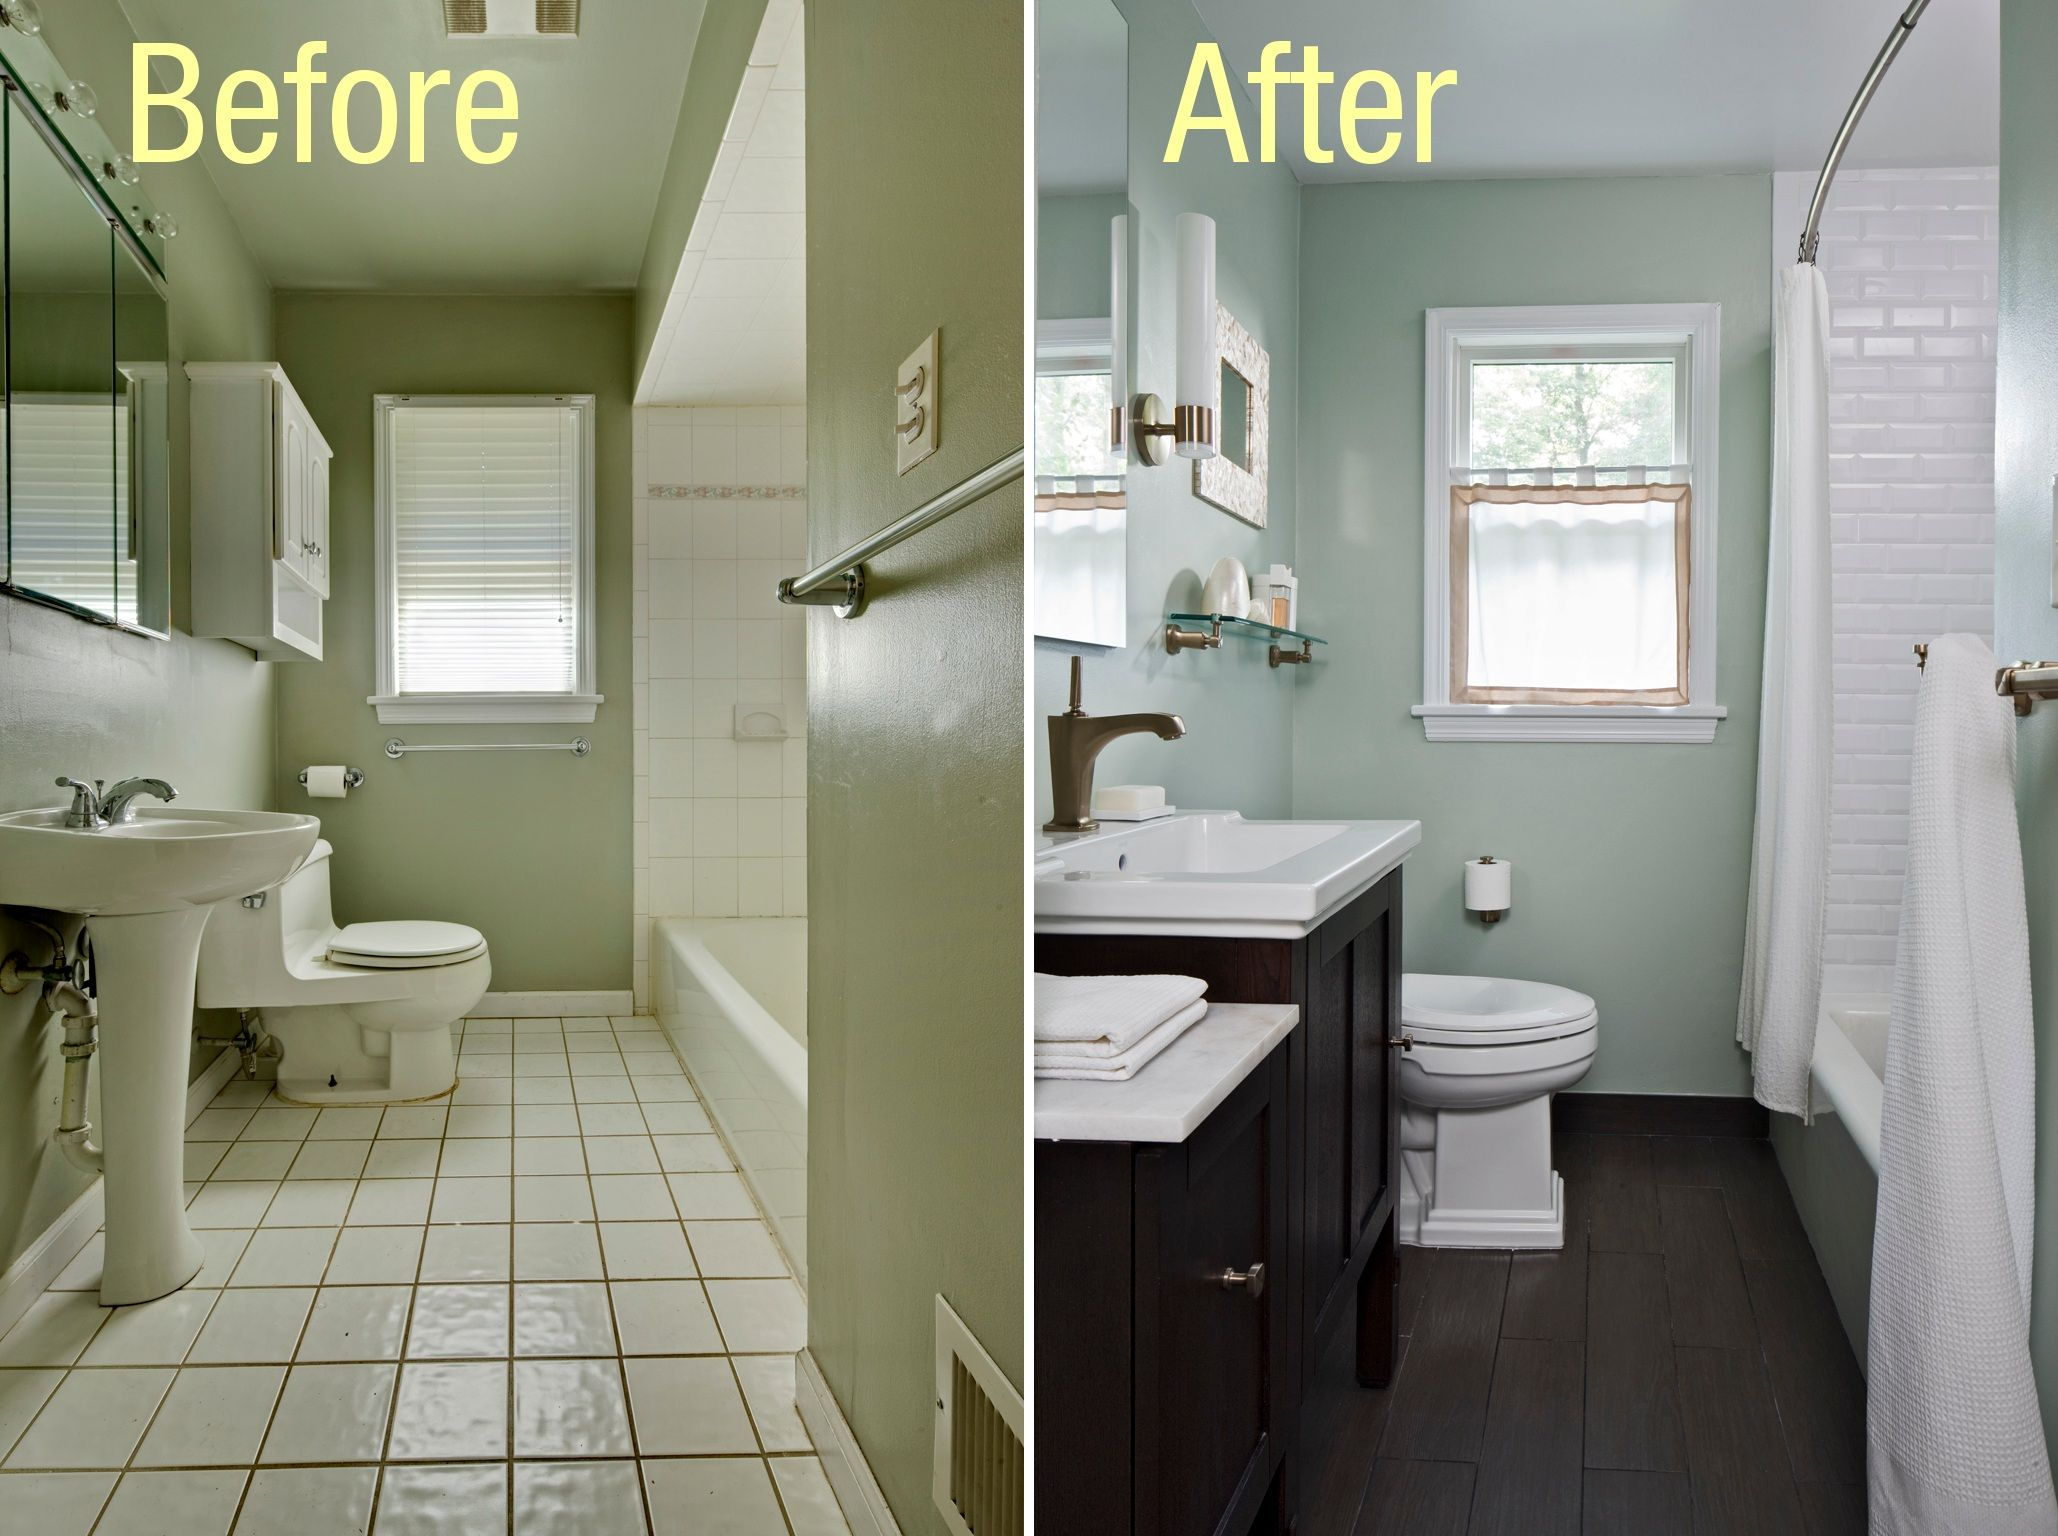 bathroom design bathroom vanities before and after photos of bathroom renovations from old simple to newinexpensive bathroom vanity ideas bathroom small. beautiful ideas. Home Design Ideas